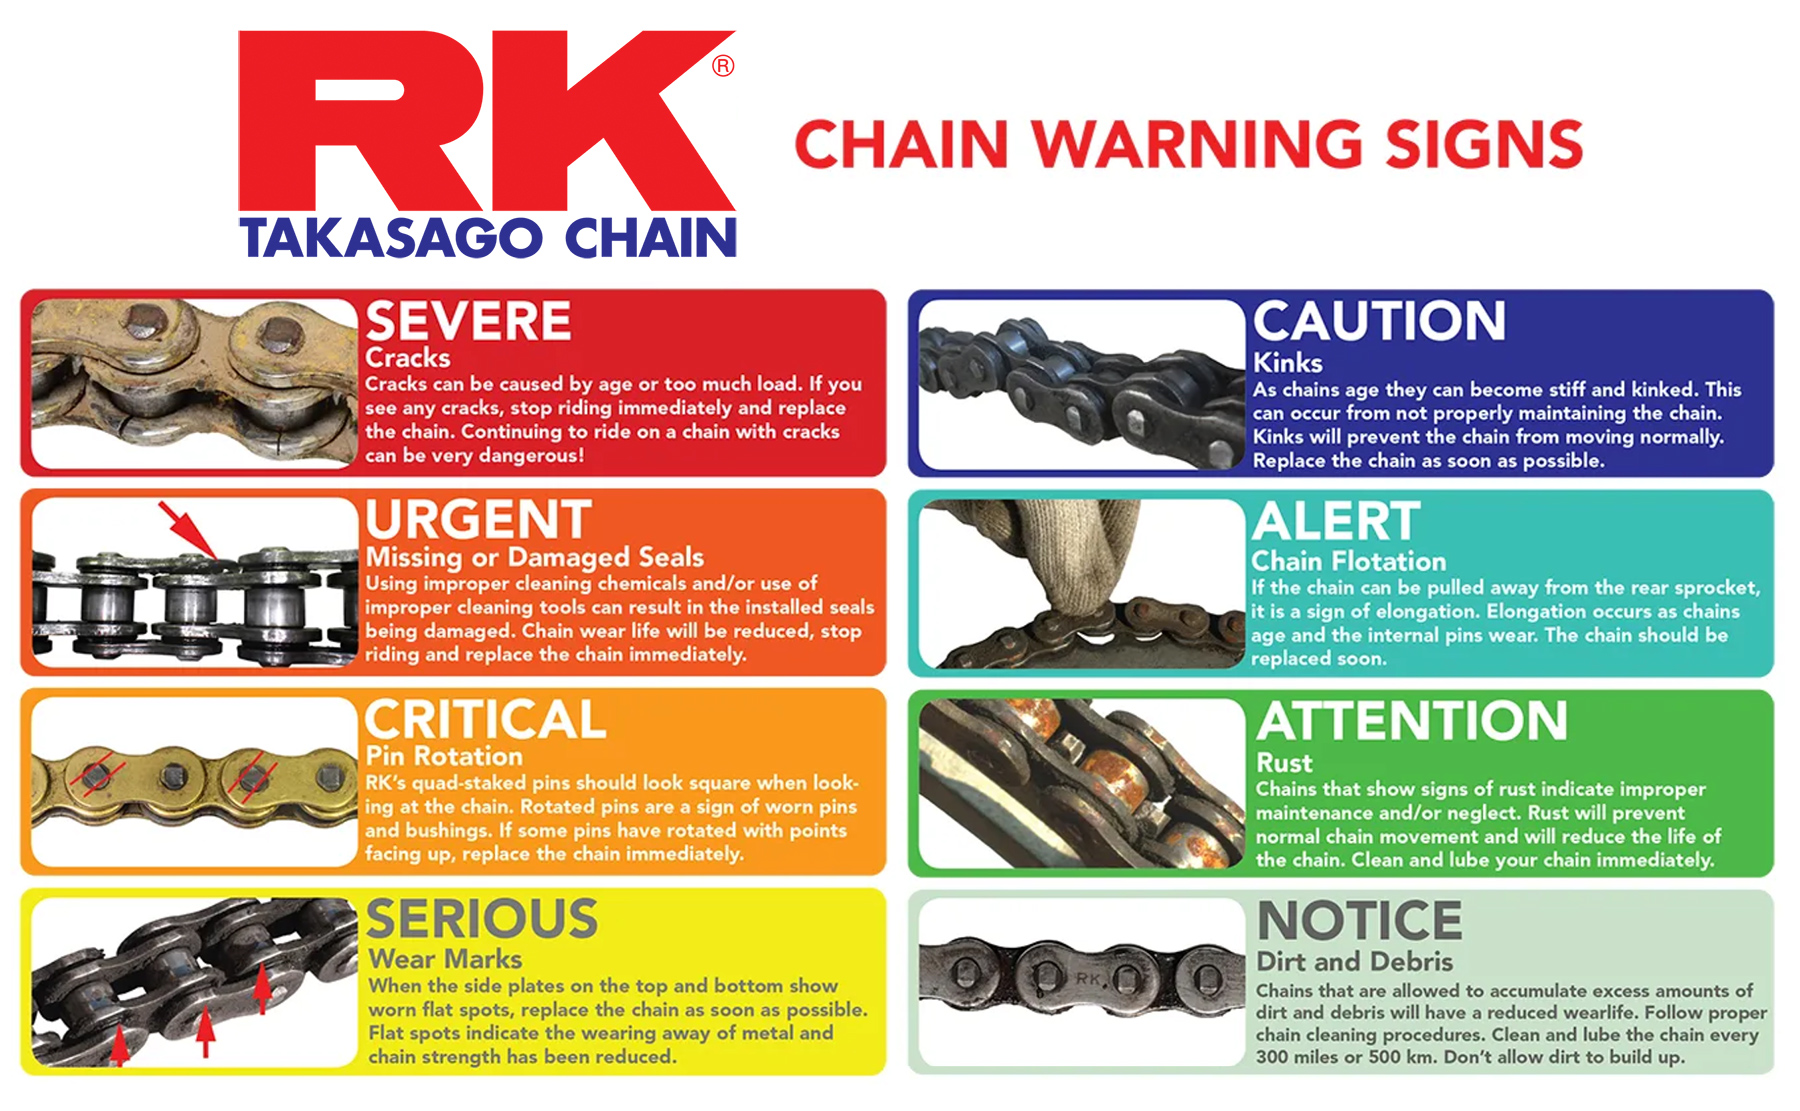 RK Chain Warning Signs